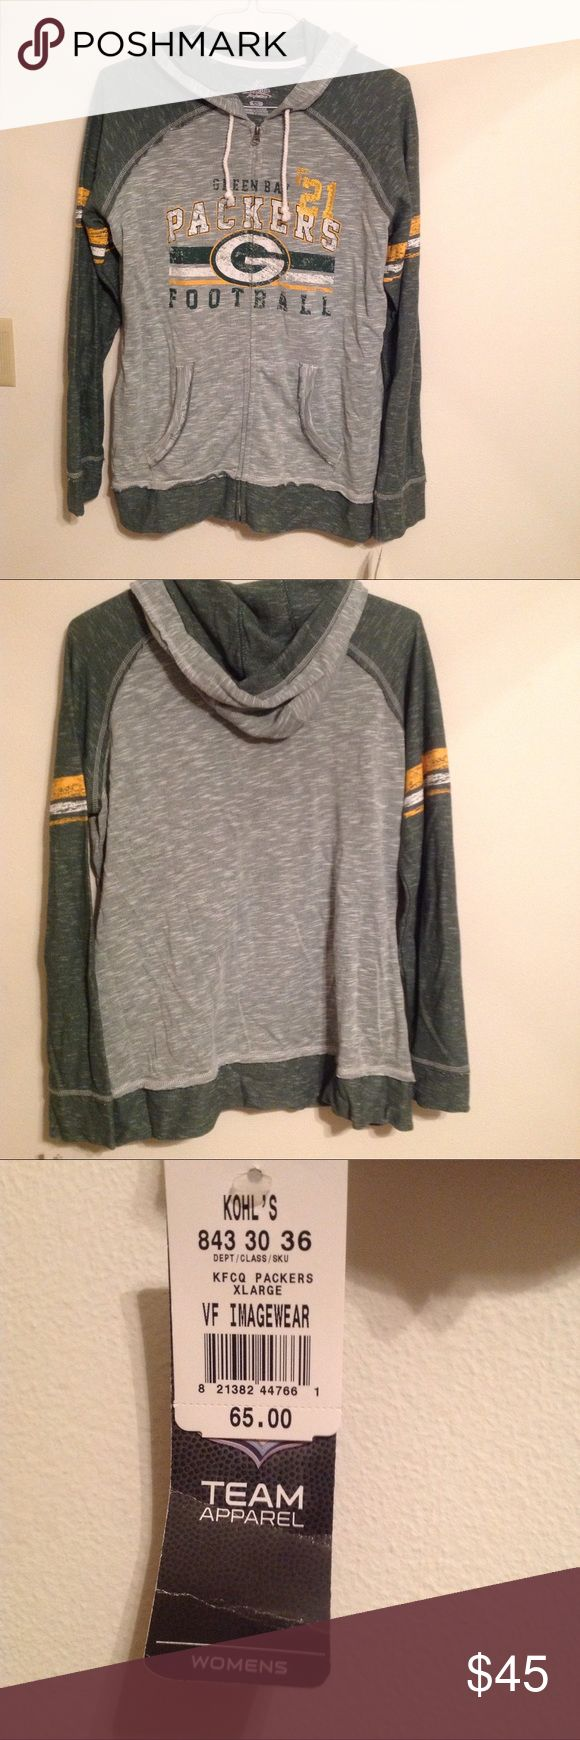 Green Bay Packers Hoodie Never worn, spaced dyed, Green Bay Packers Hoodie. I love it, just need the money so, on Poshmark it goes! Majestic Fan Fashion Tops Sweatshirts & Hoodies